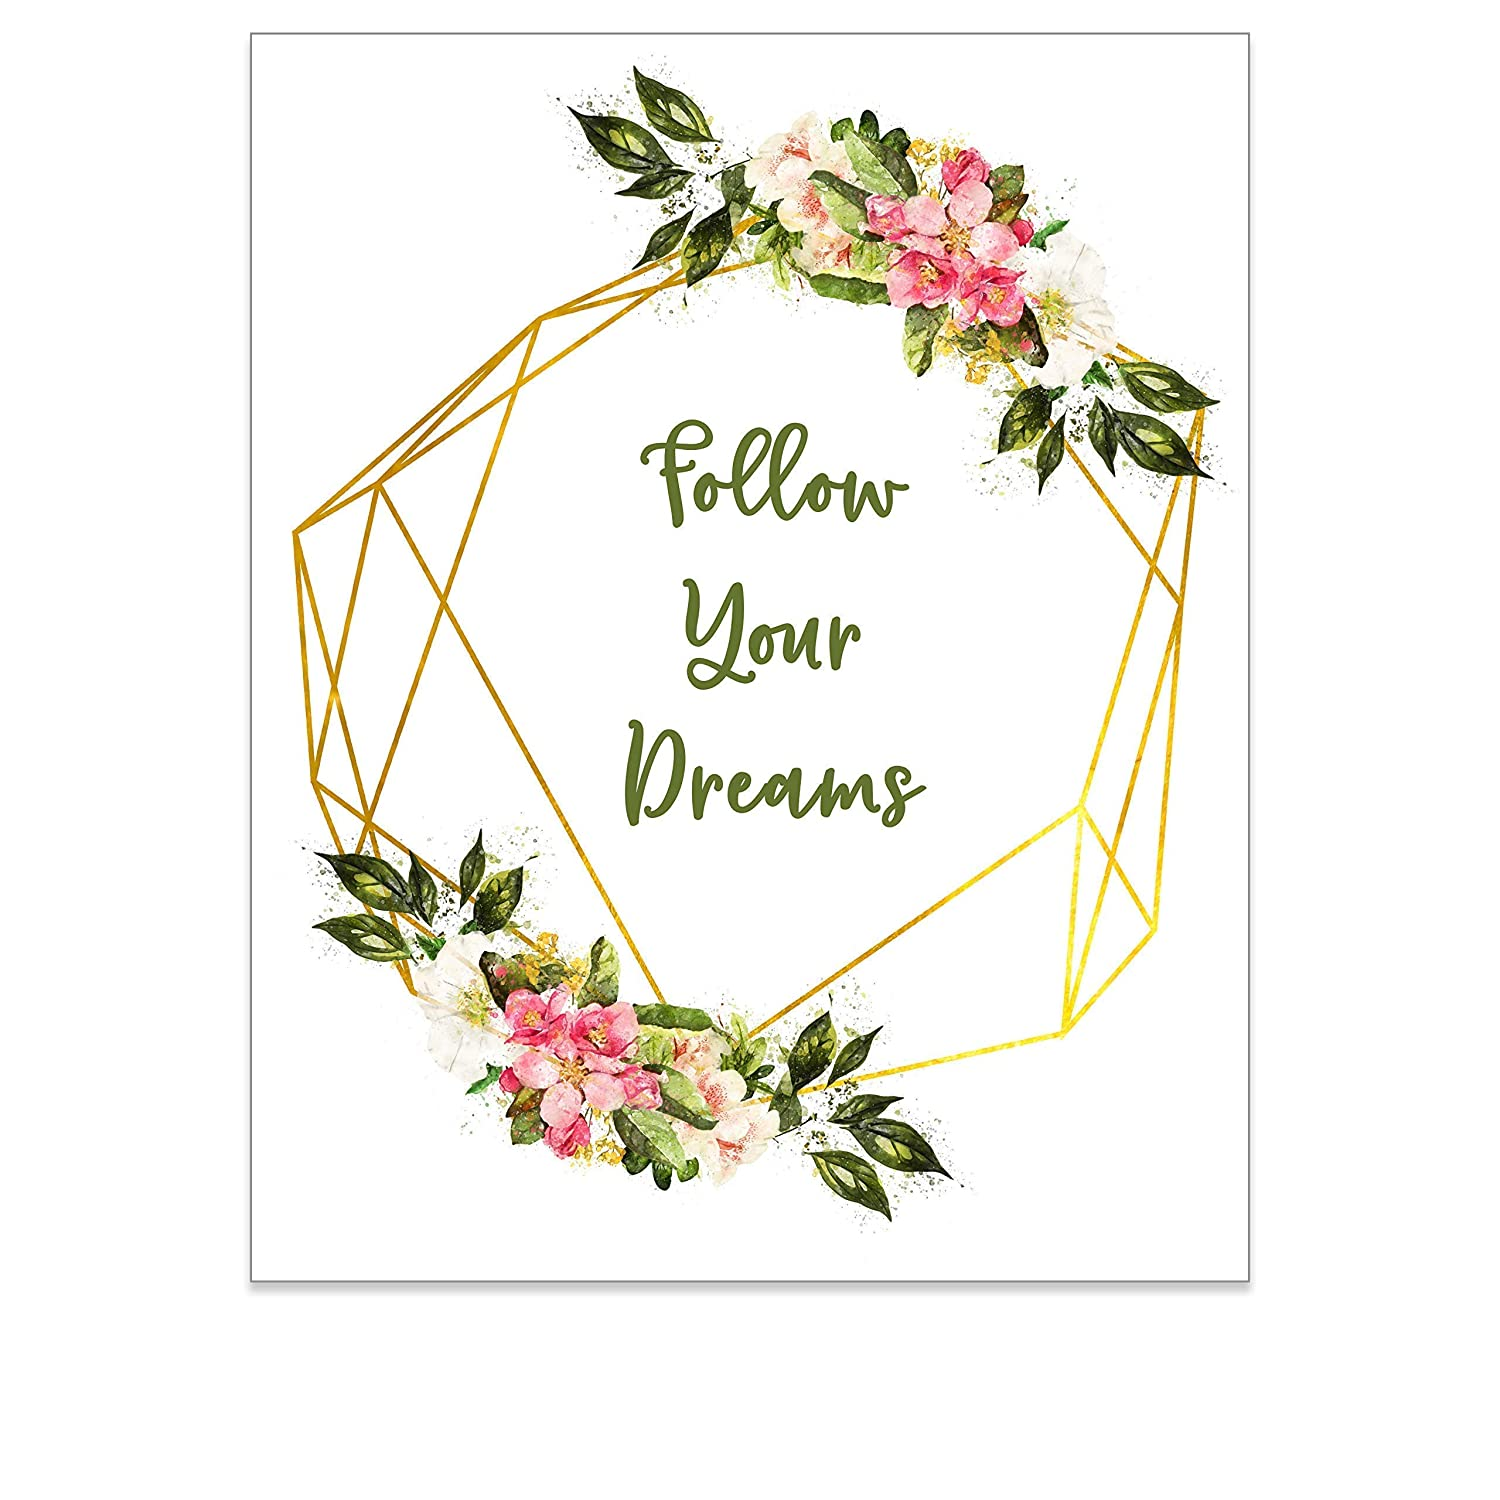 Amazon Com Inspirational Quotes Wall Art For Women Strong Girls Floral Wreath Boho Print Positive Affirmation Wall Decor For Teens Shabby Chic Bedroom Artwork For Her Follow Your Dreams